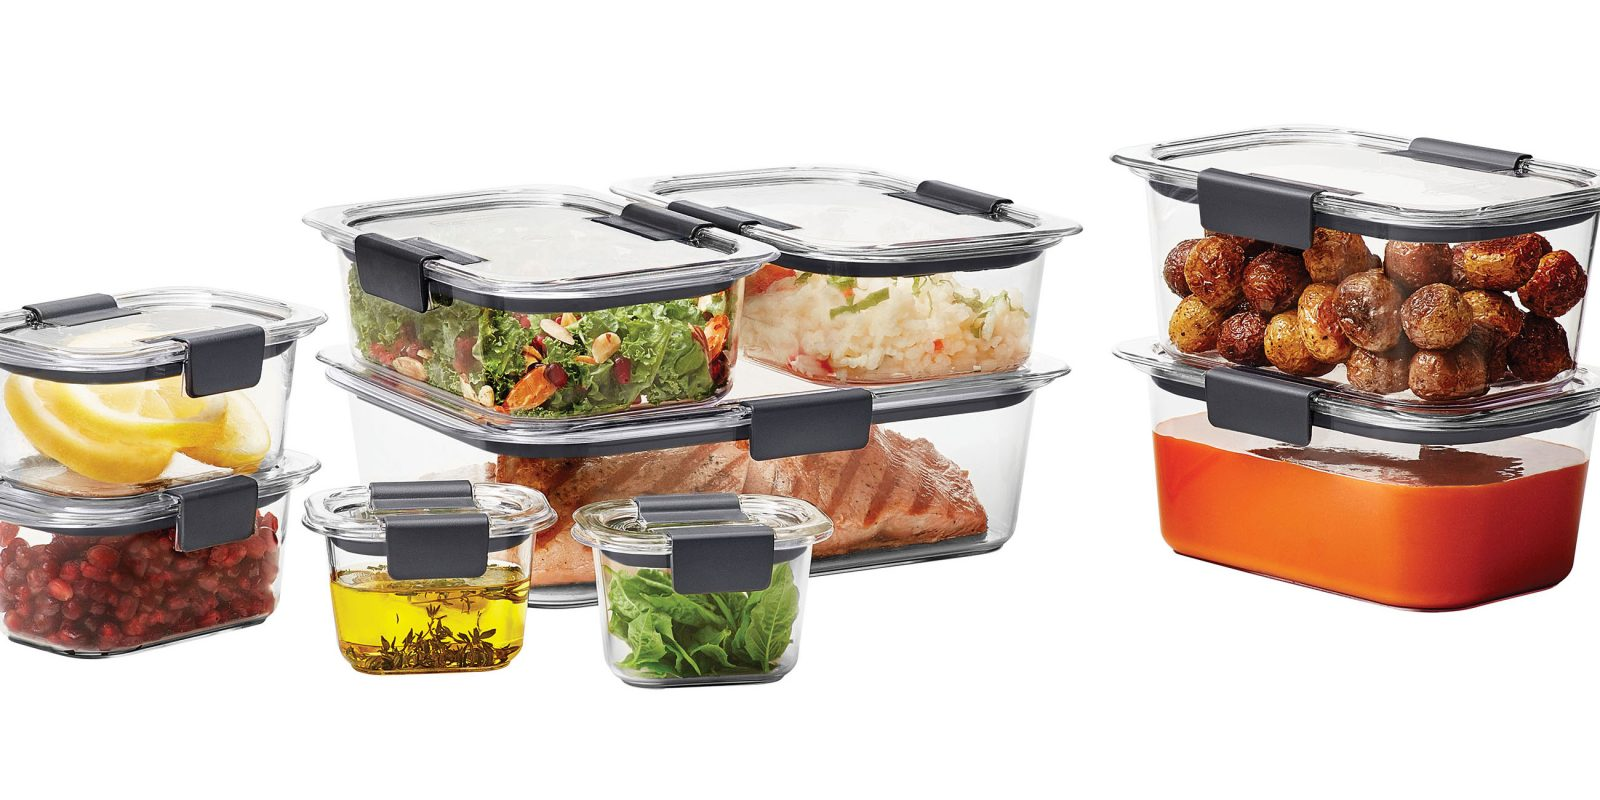 Upgrade your food storage w/ this Rubbermaid 18-piece set for $19 (Reg. $30+)